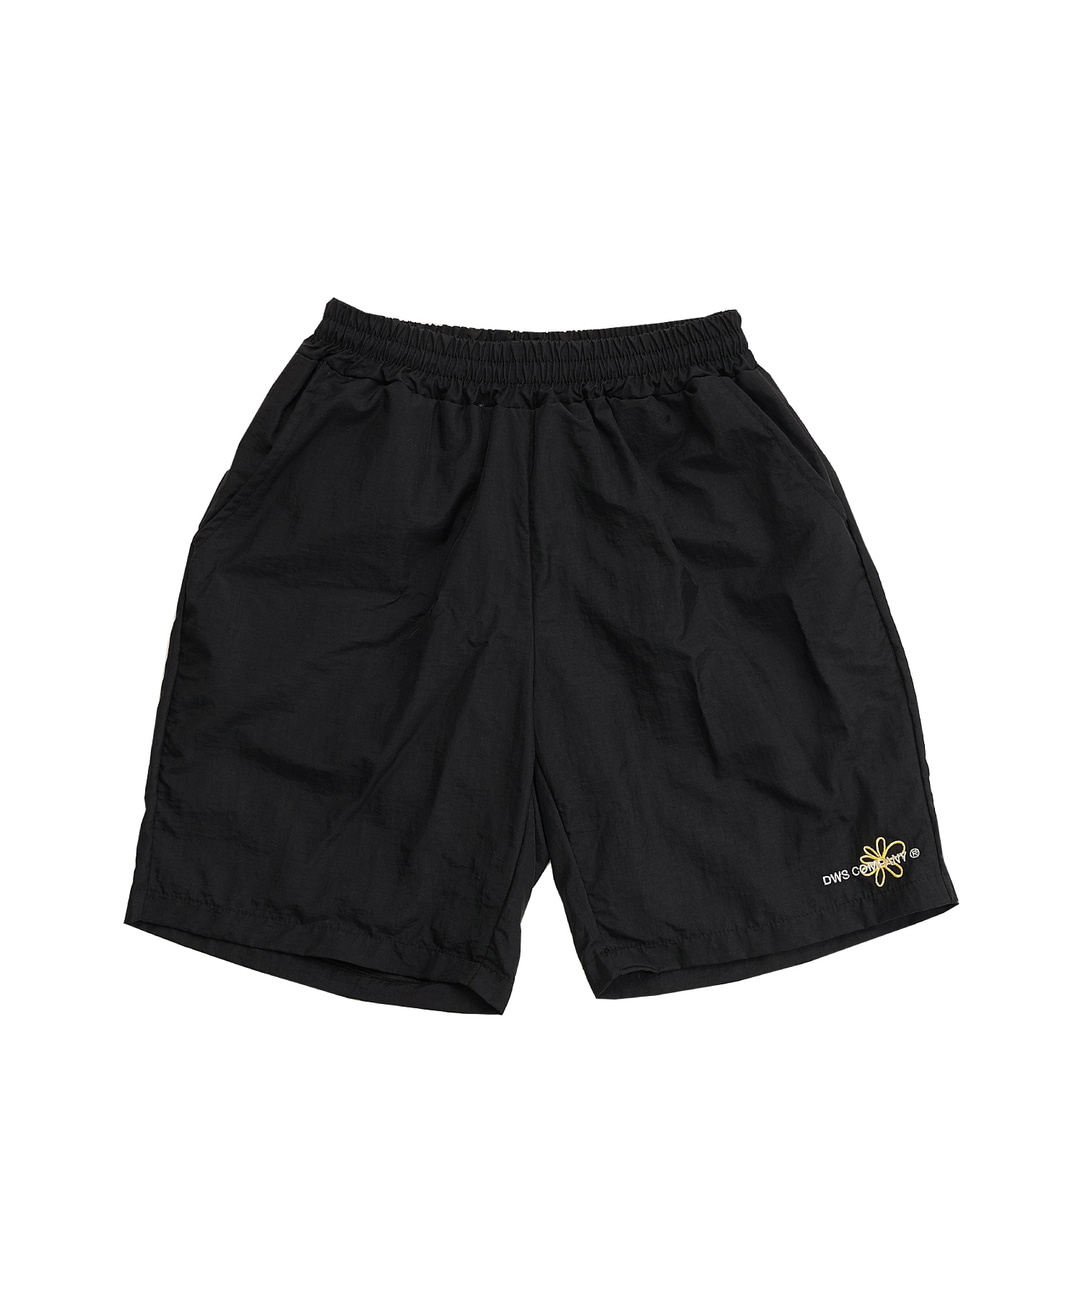 DWS FLOWER LOGO SHORTS(BLACK)